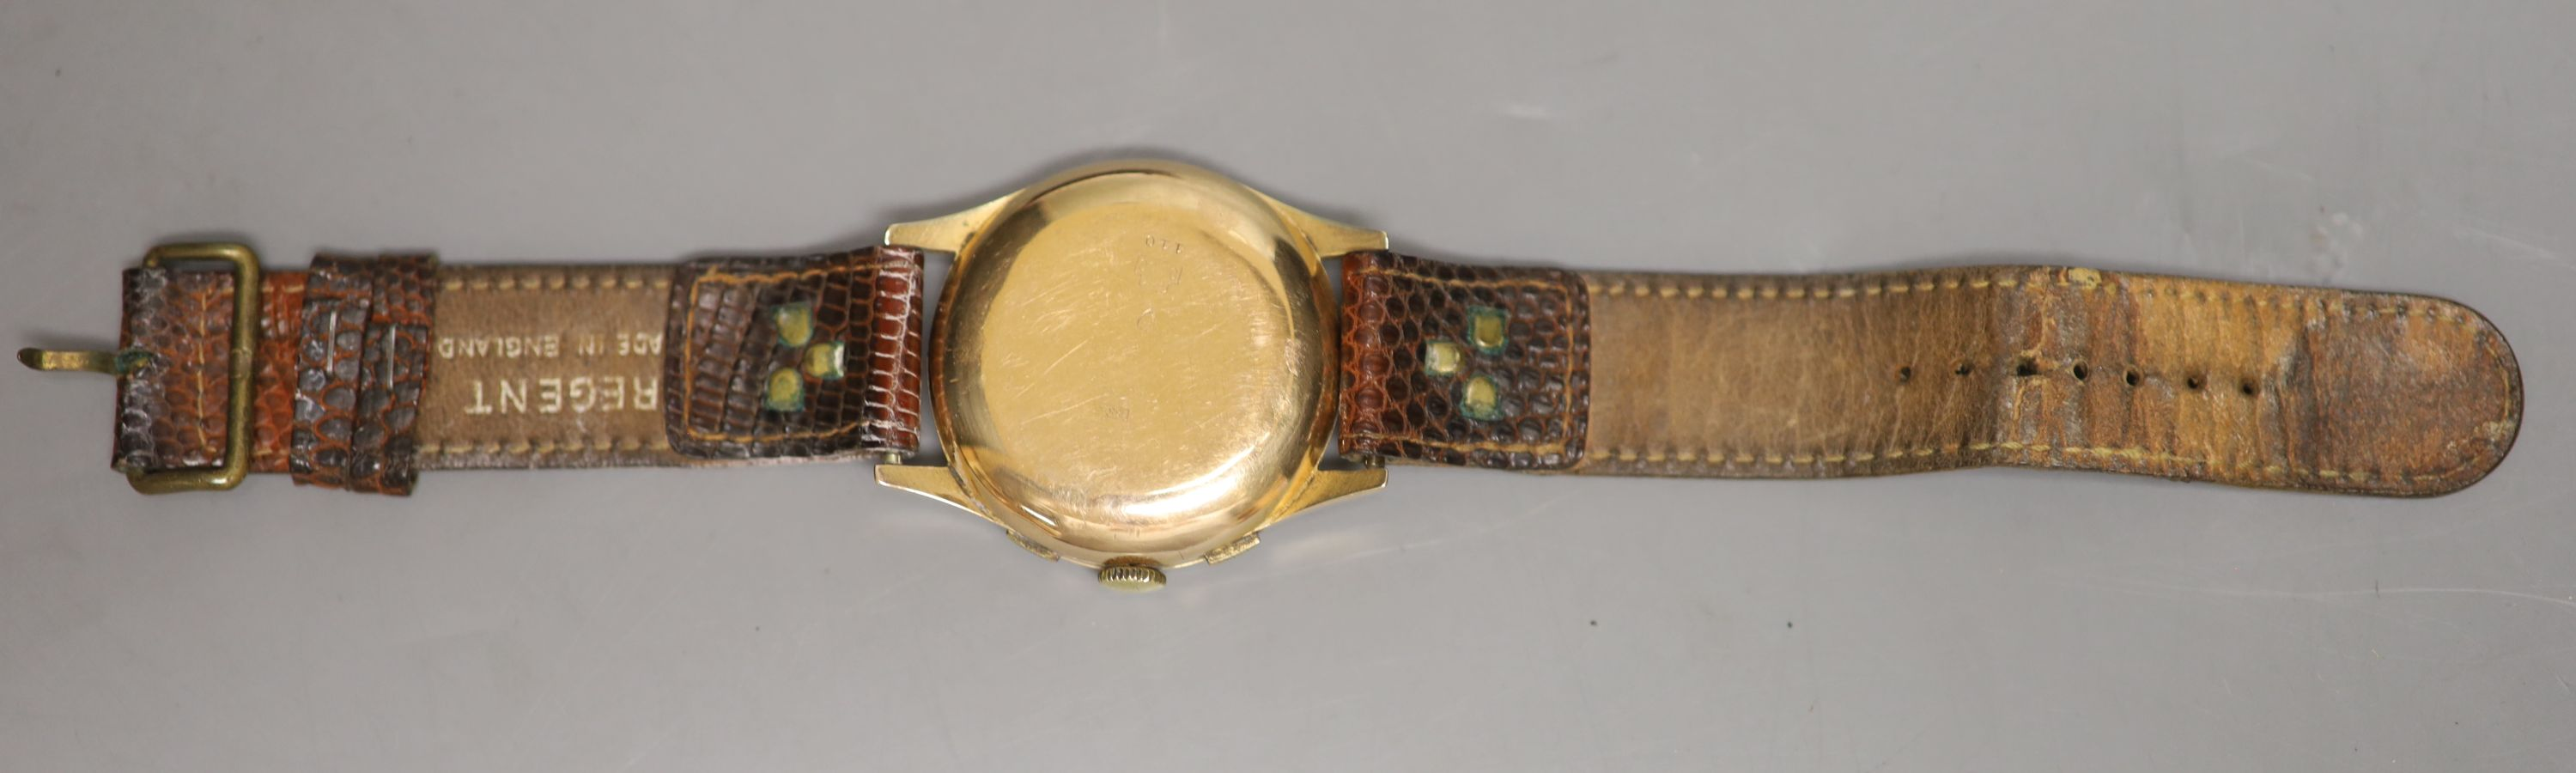 A Swiss 18k yellow metal chronograph manual wind wrist watch, on associated leather strap, with a - Image 3 of 3